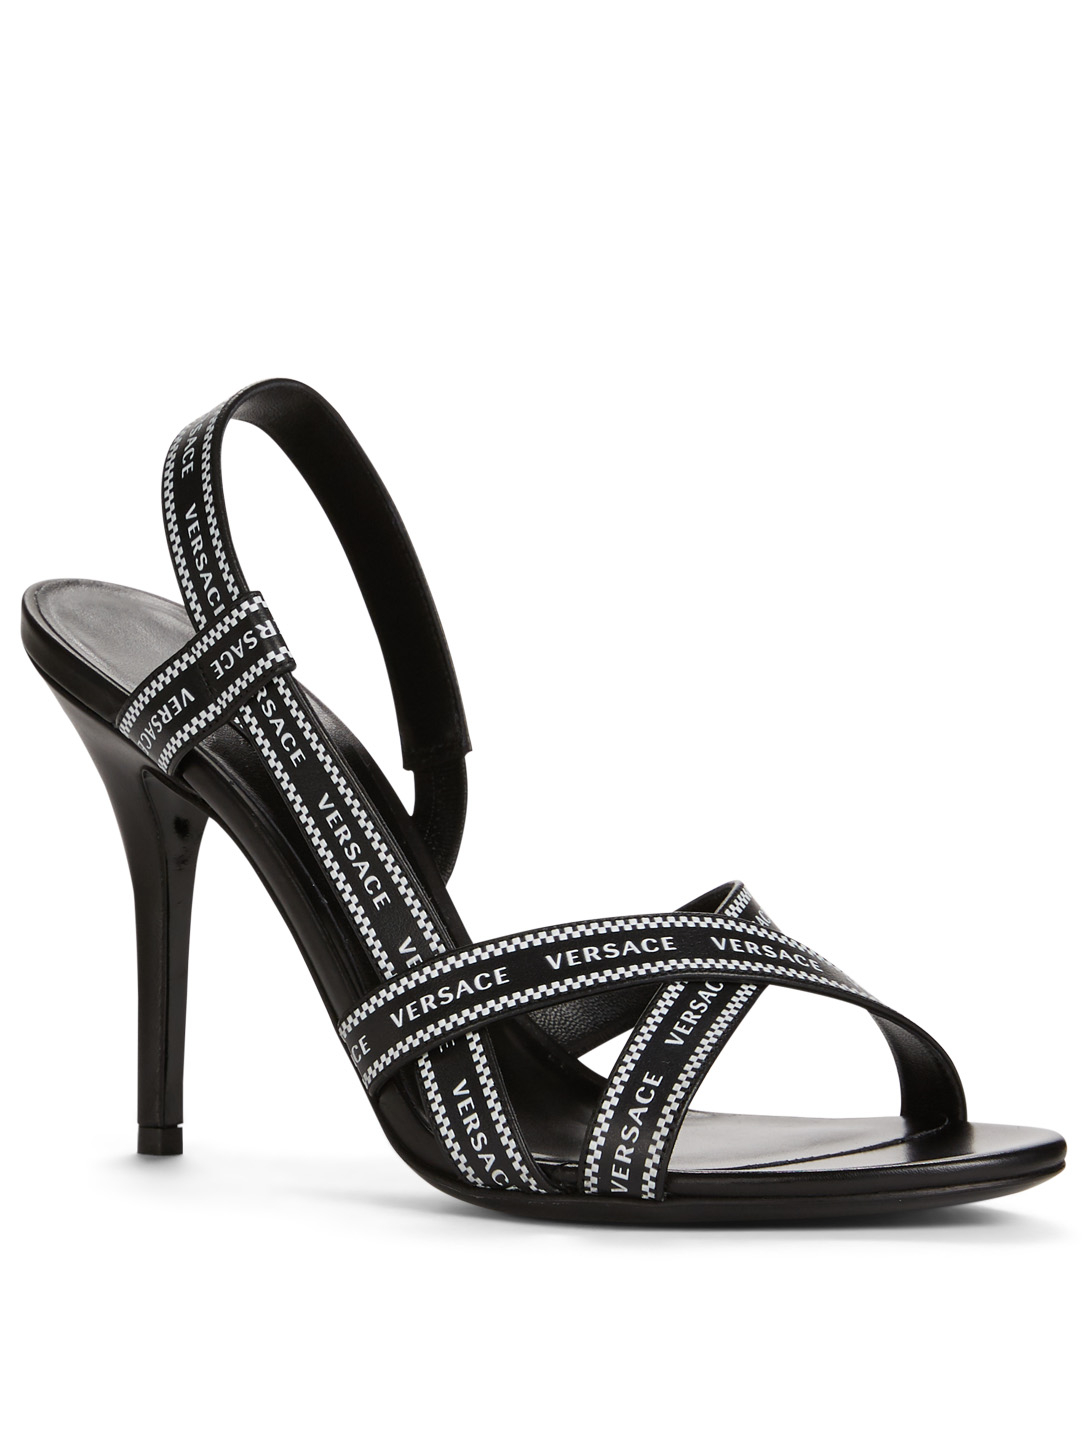 5611a0d99f ... VERSACE Nastro Versace Leather Heeled Sandals Women's Black ...